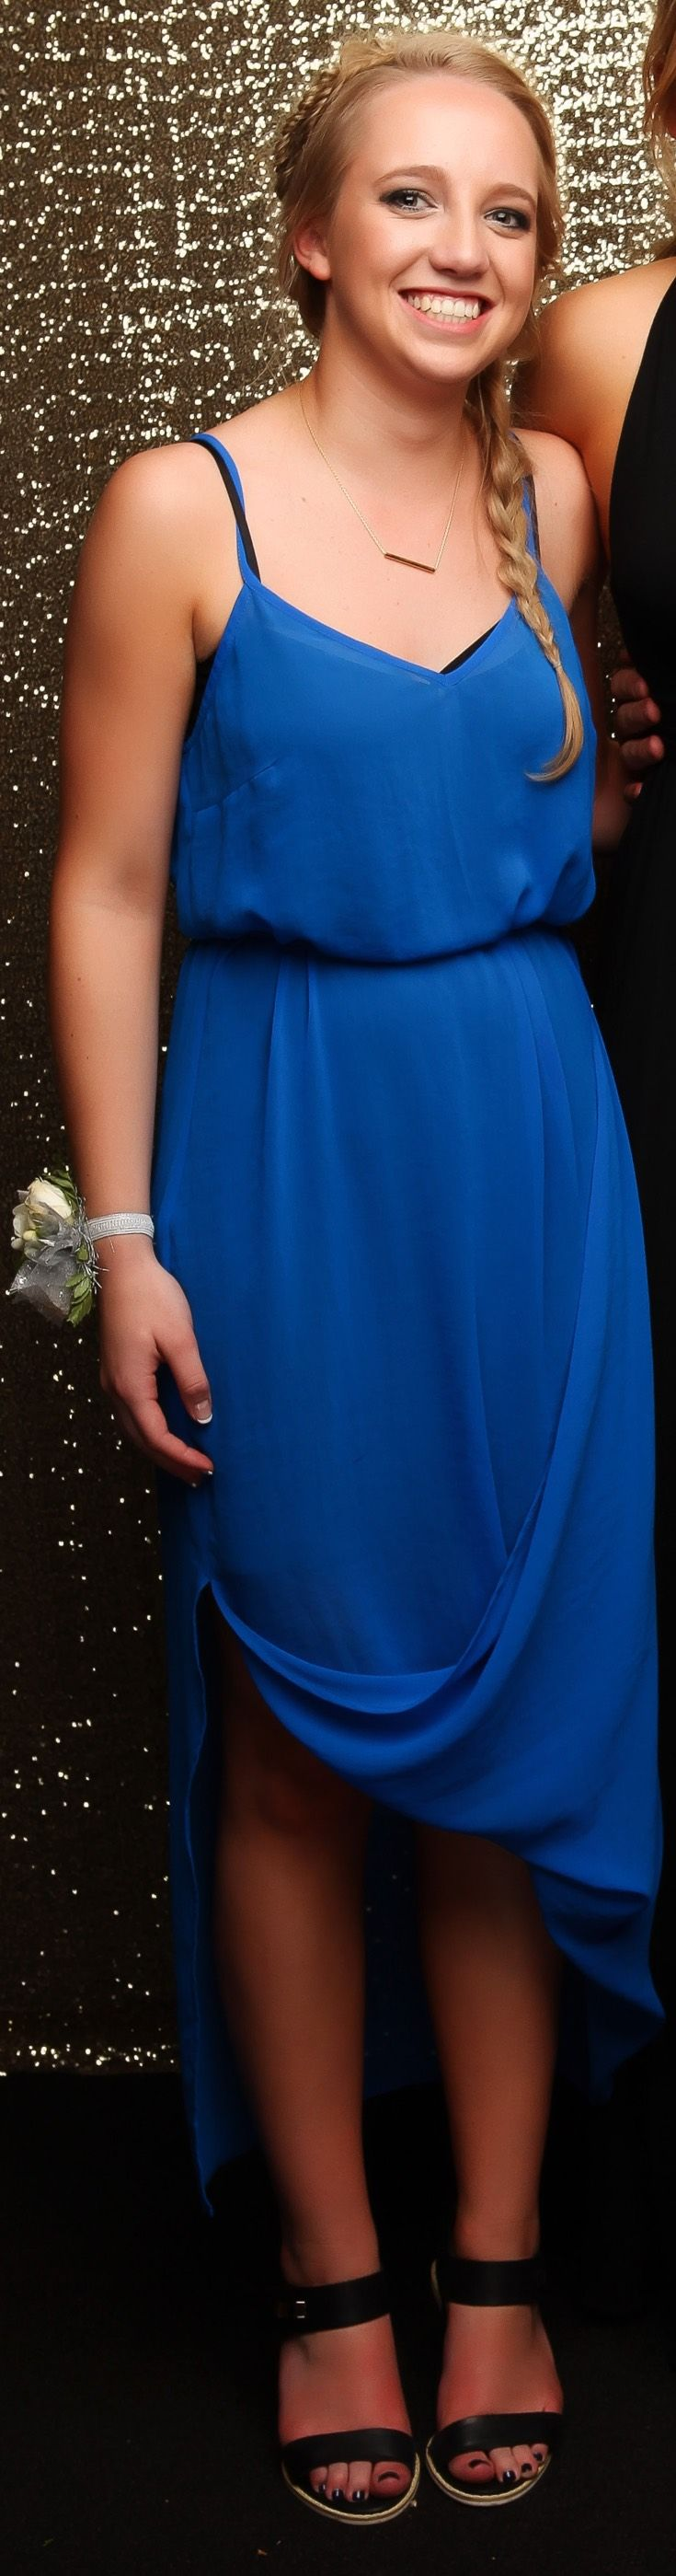 St Kentigern College Ball 2015. Incredible blue gown! www.whitedoor.co.nz